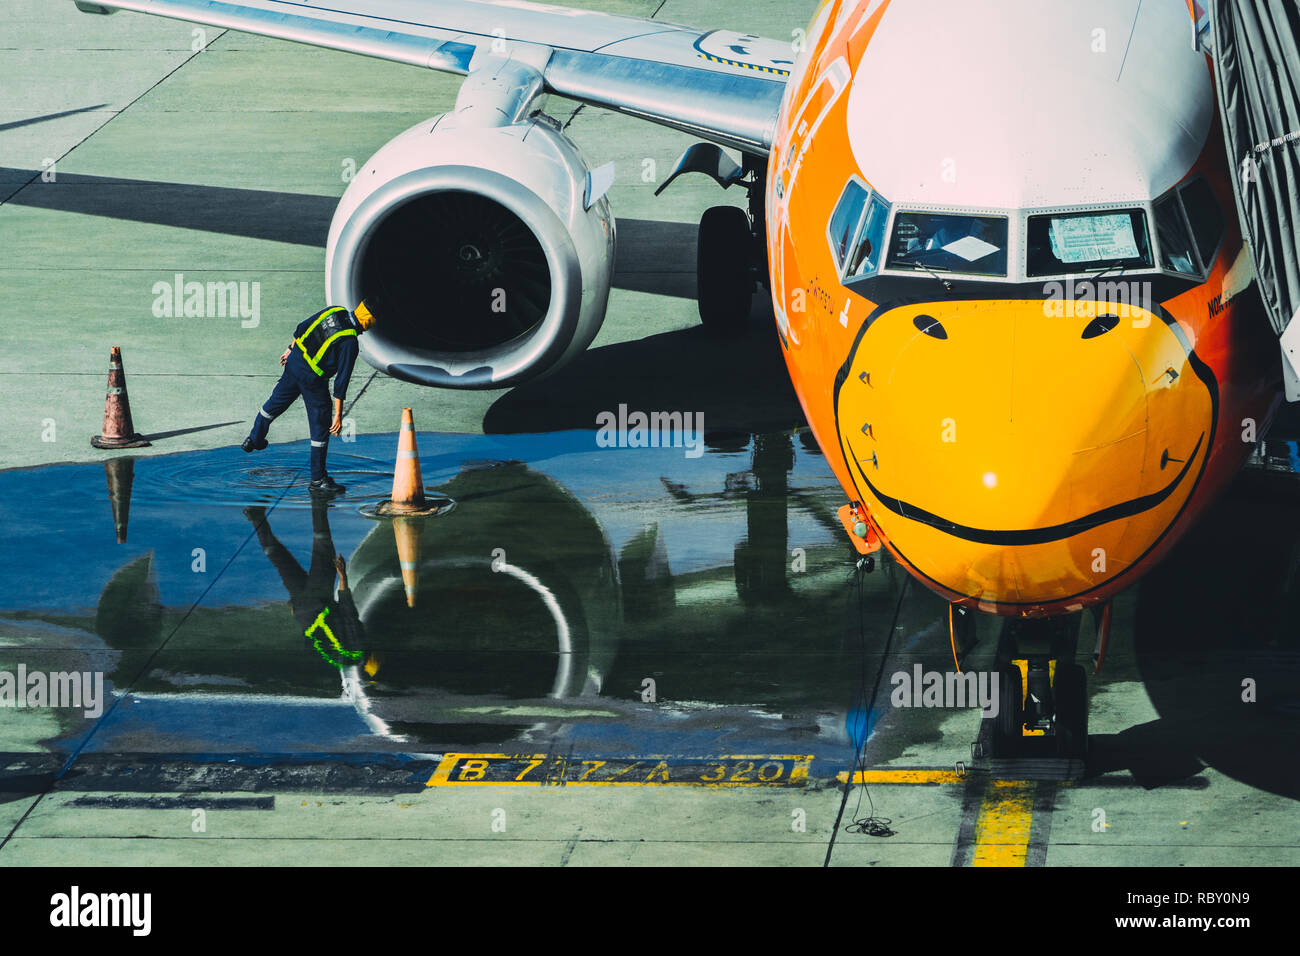 Bangkok, Thailand - October 14, 2018 : member ground crew worker checking aircraft turbine engine, air intake and fan blades of  Nok Air airplane befo - Stock Image